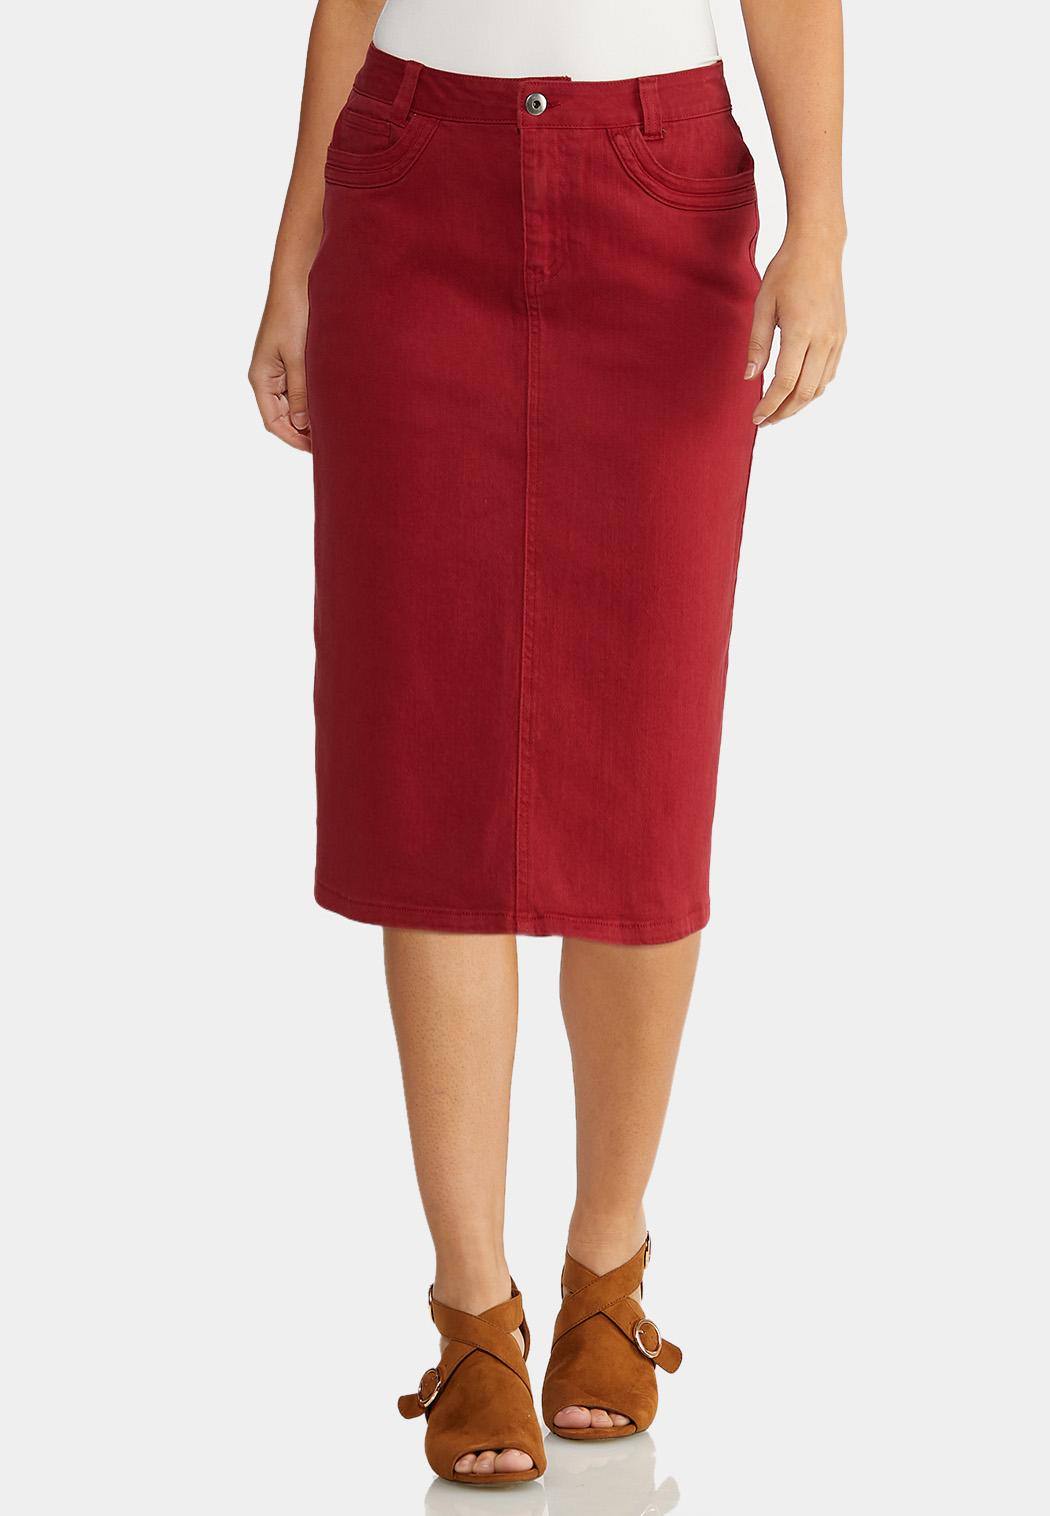 bef24df01505 Women's Plus Size Skirts